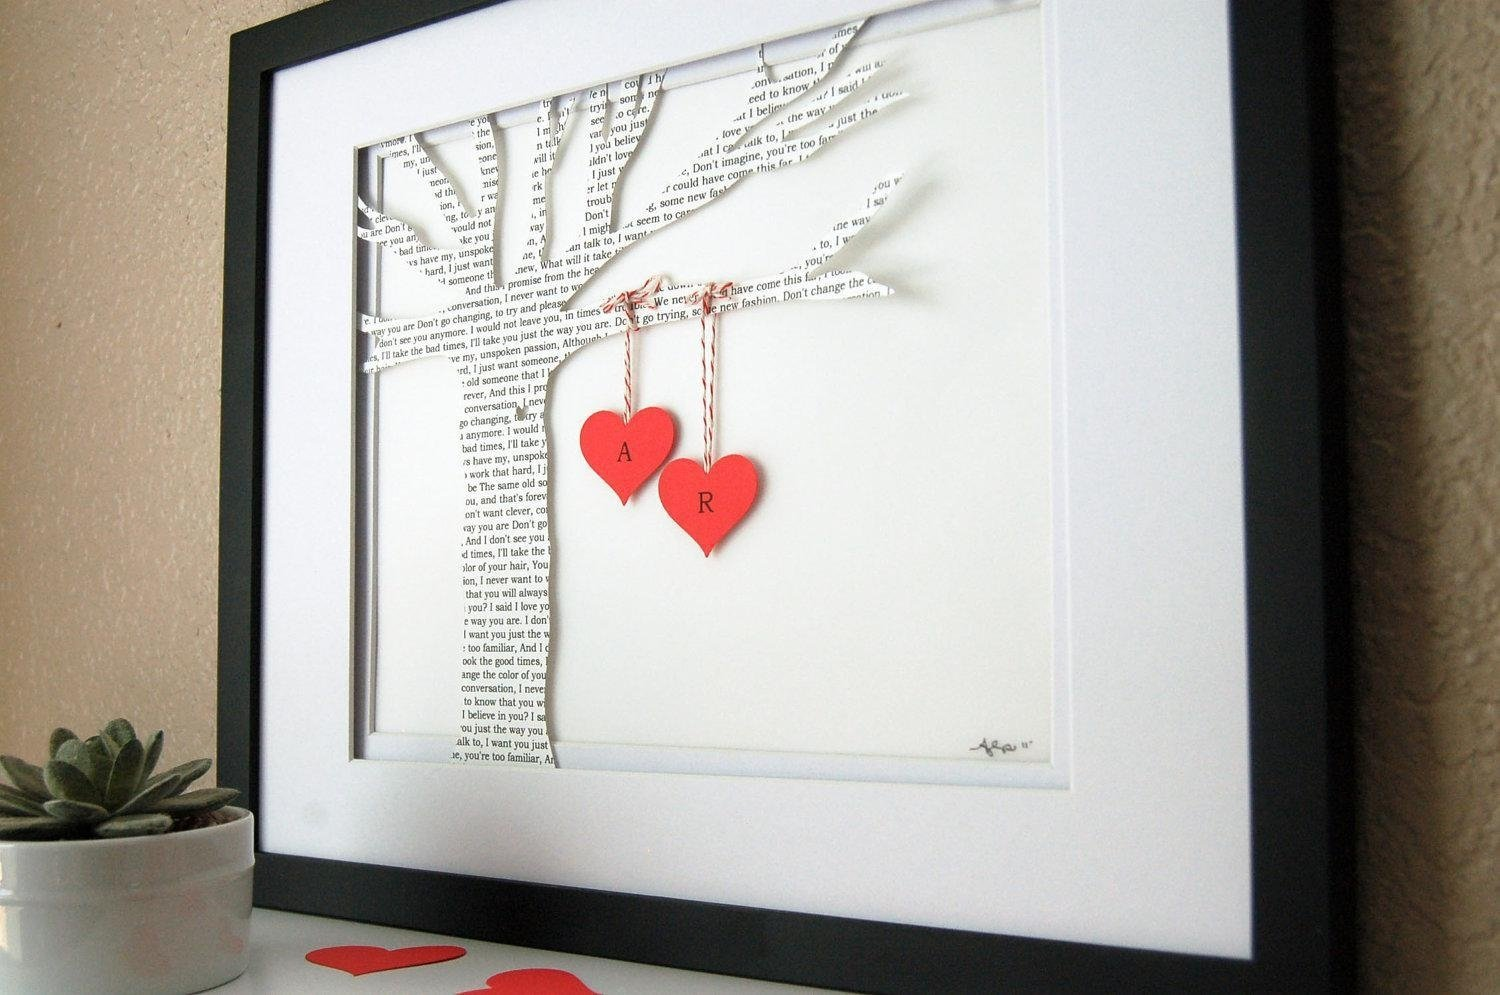 10 Attractive Second Wedding Anniversary Gift Ideas For Her unusual creative anniversary gift ideas for her 5 2021